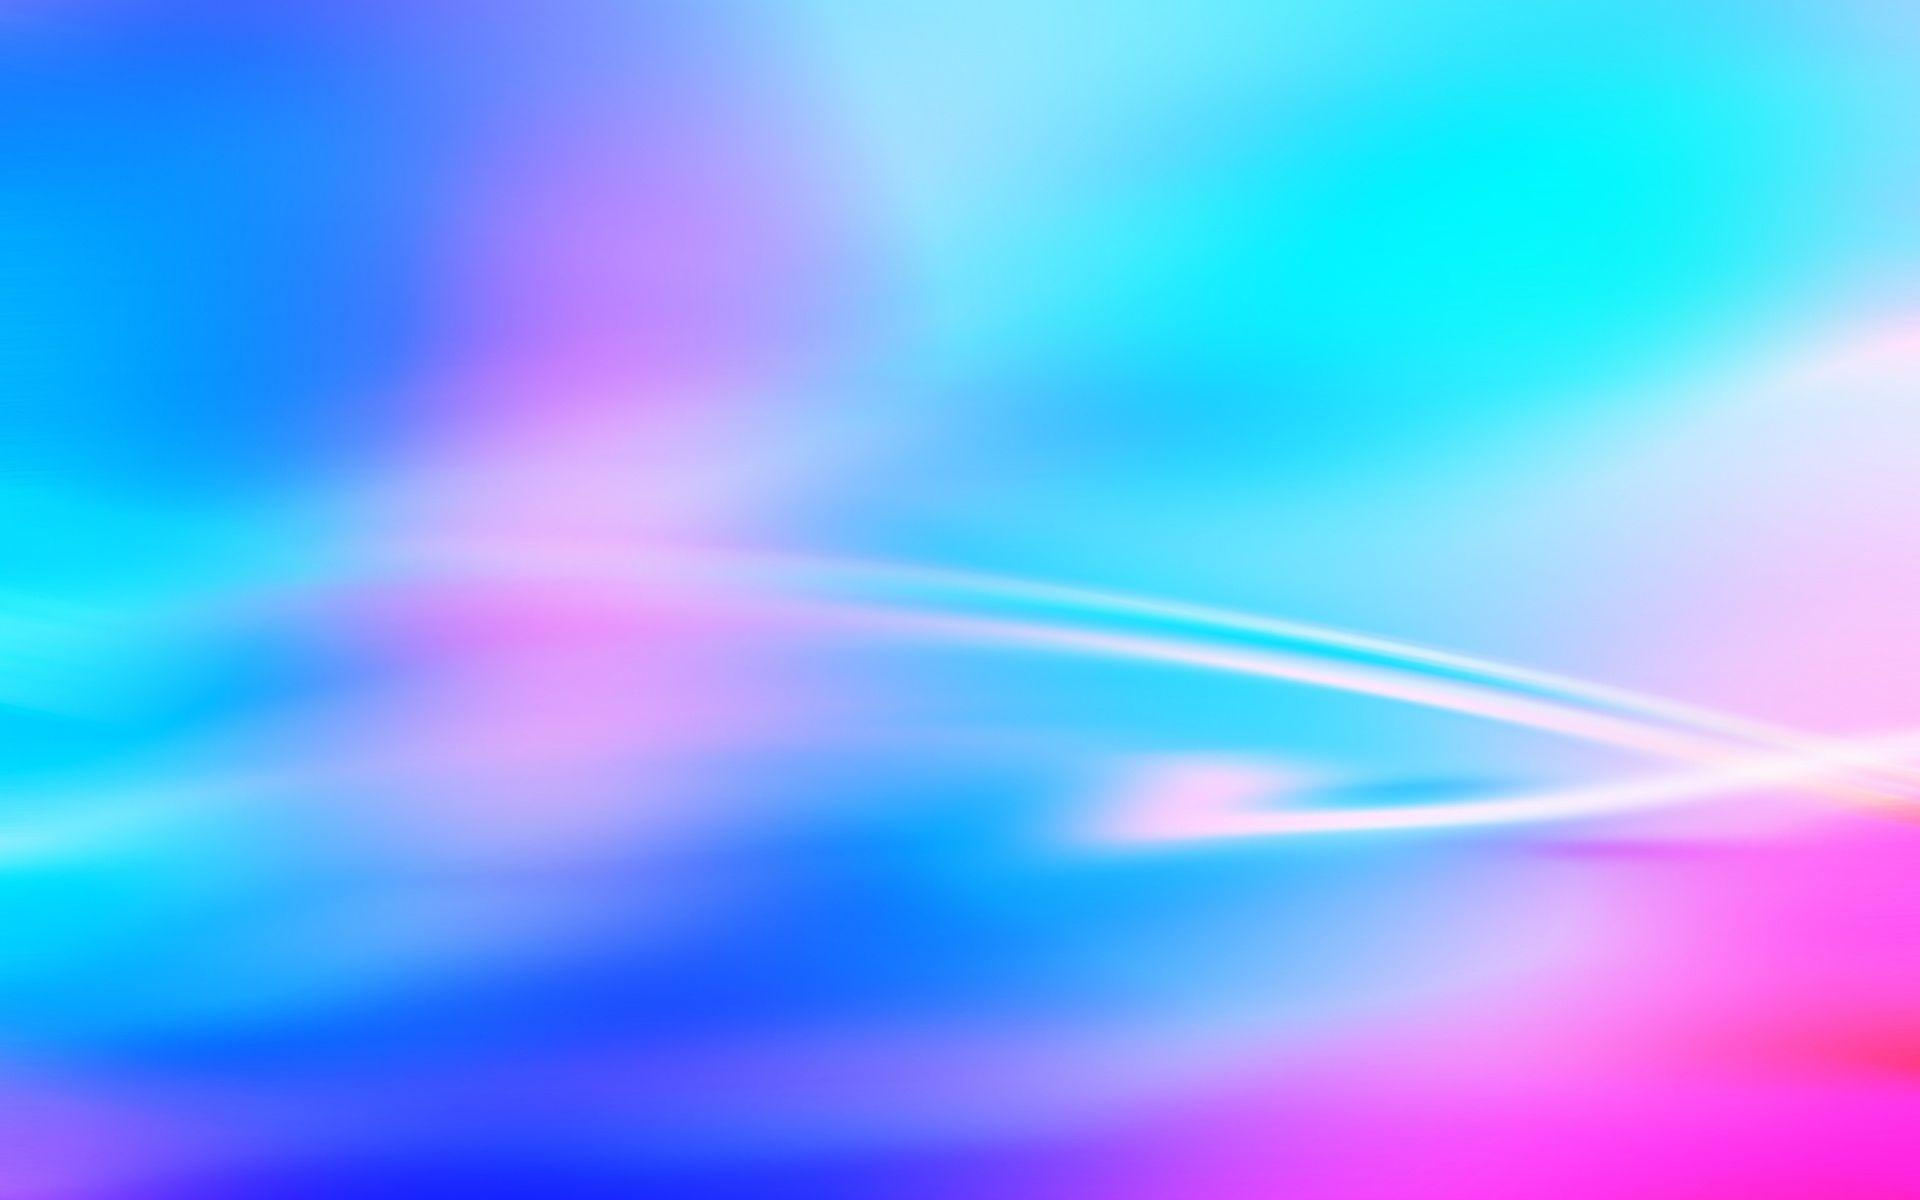 Aesthetic Light Pink Background Hd Largest Wallpaper Portal